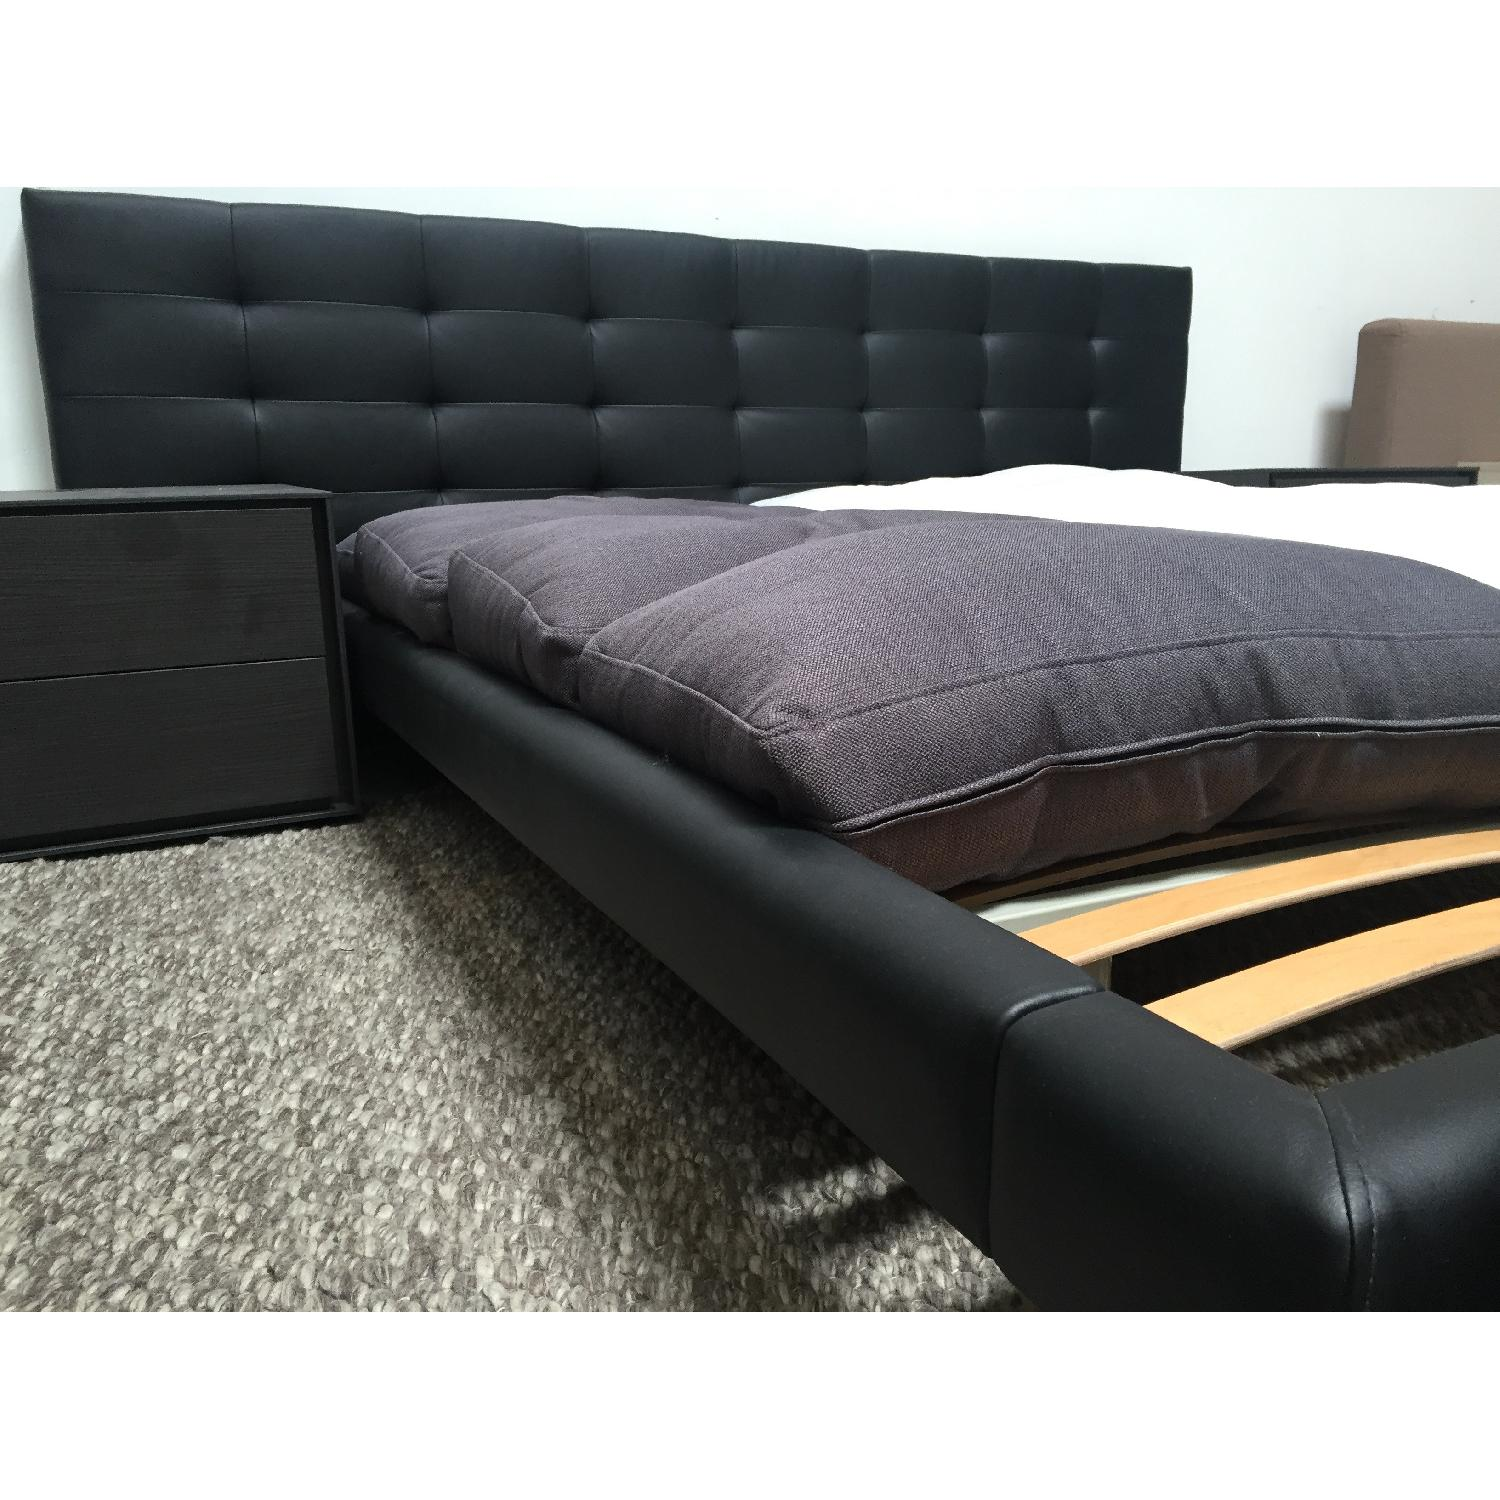 Lazzoni Black Leather Queen Size Bed Frame - image-4